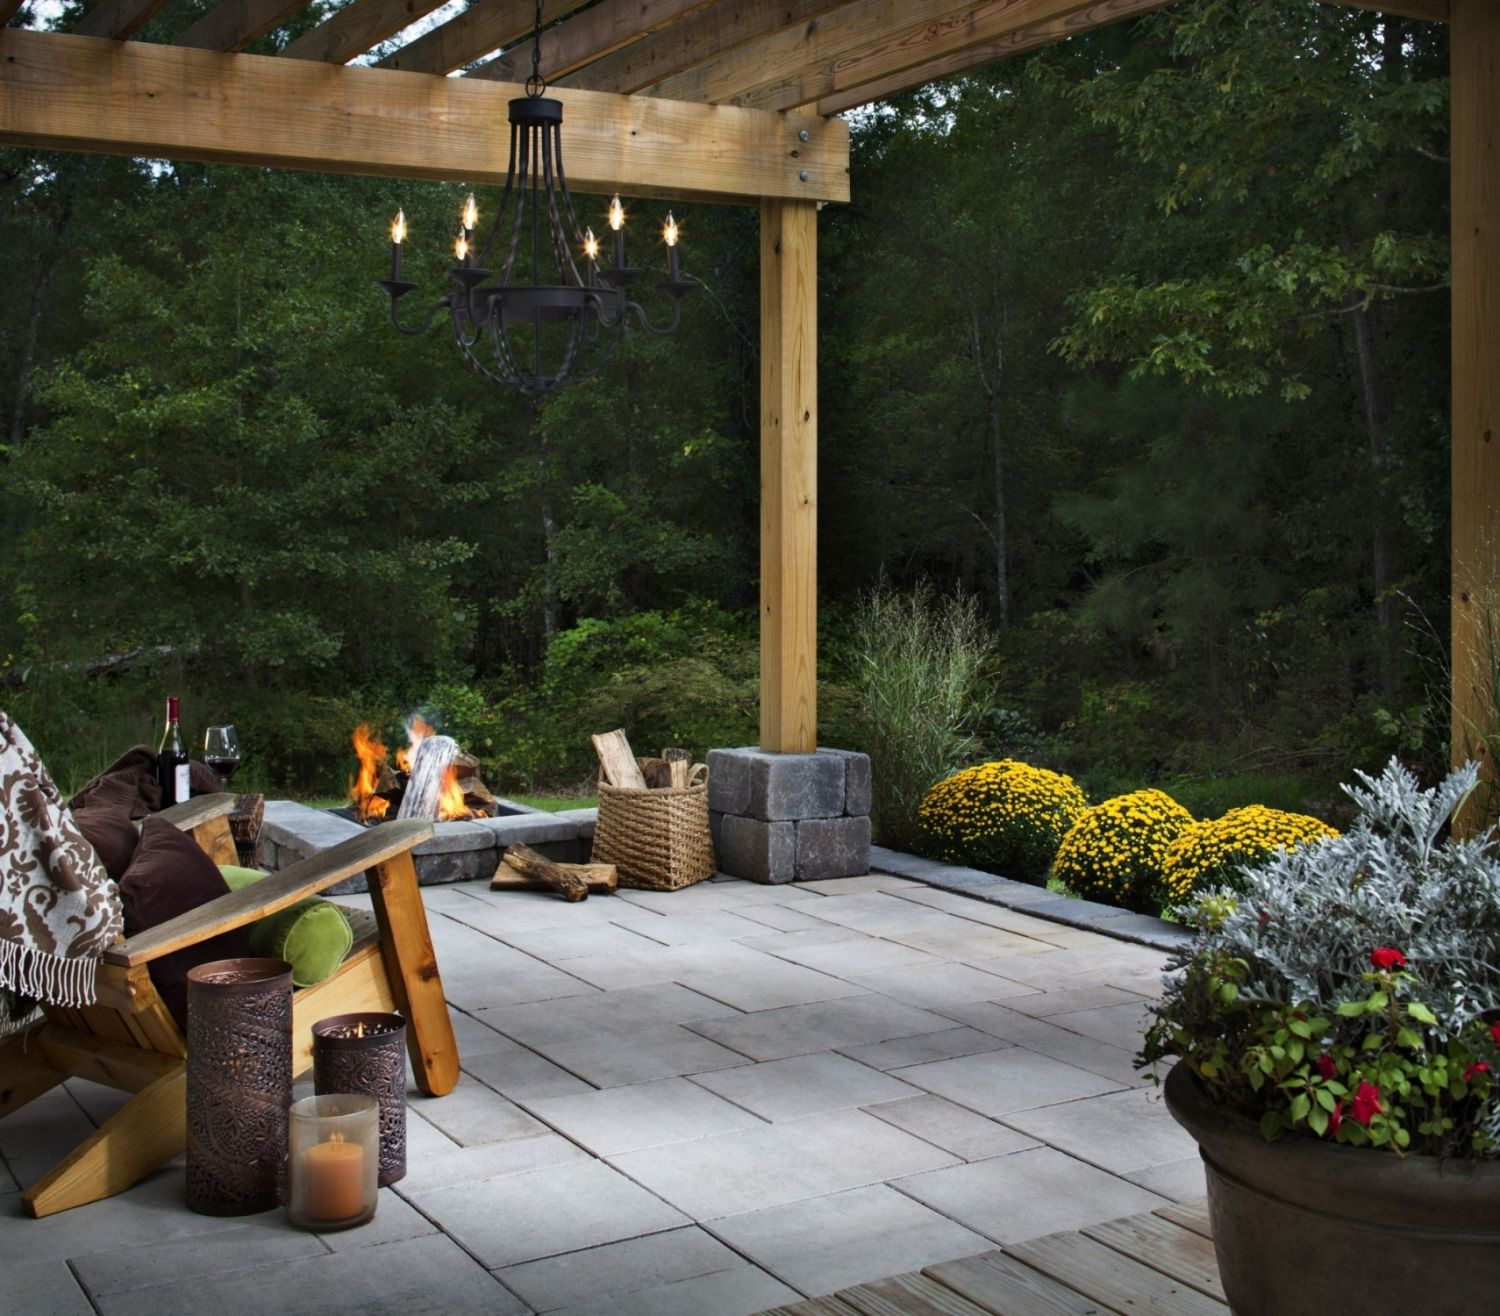 Top Garden Trends For 2017: The Top Landscaping Trends Of 2018 (Guide)